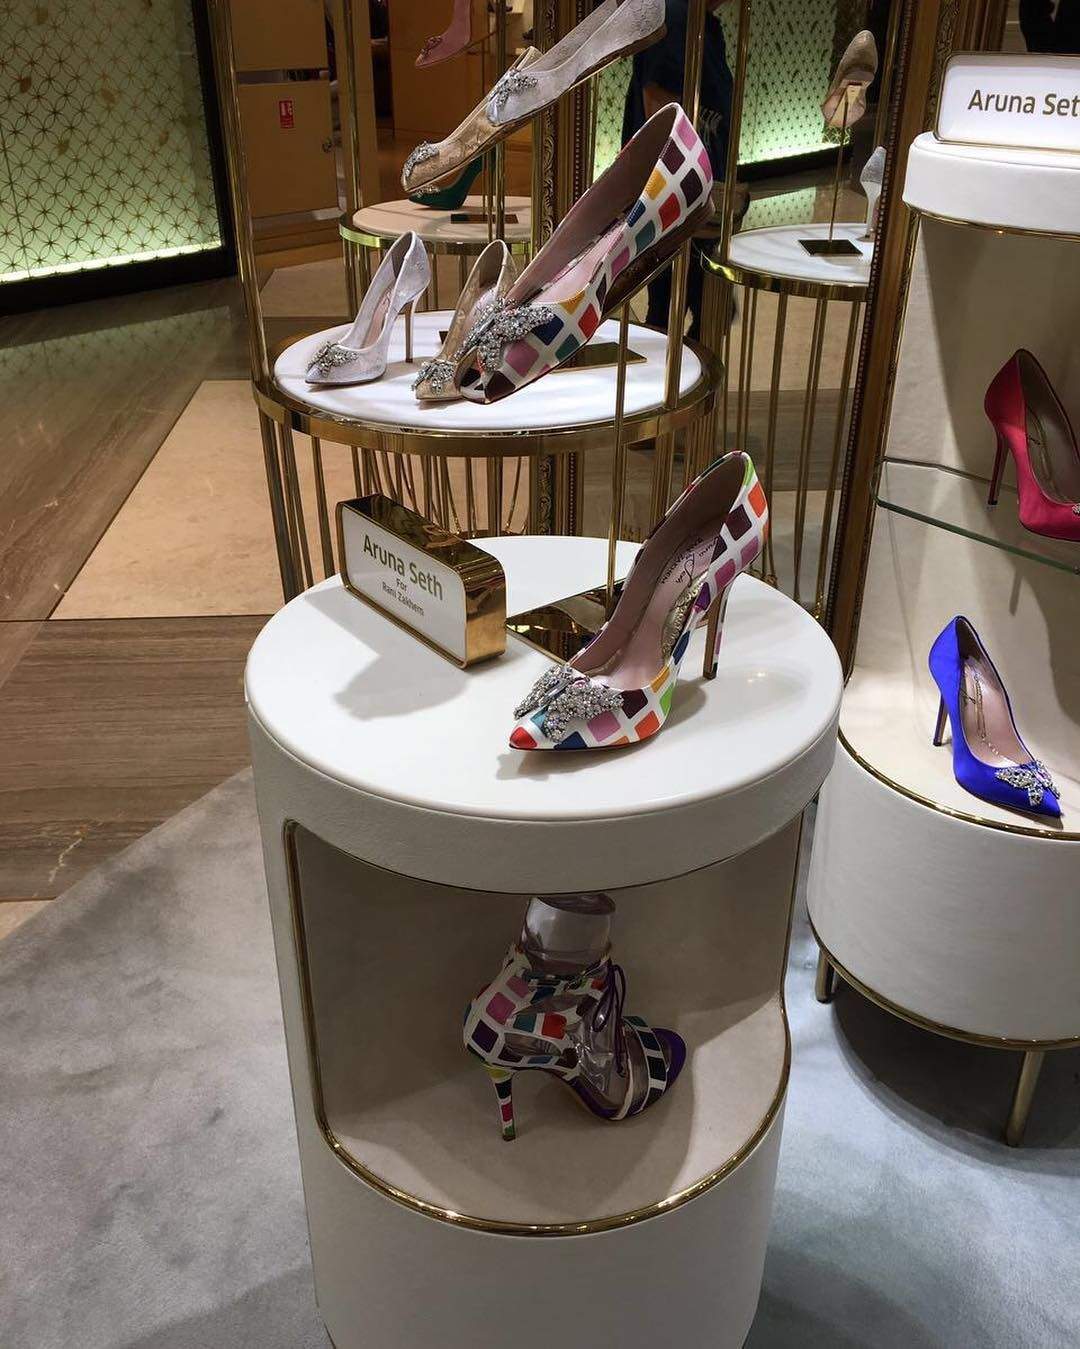 Aruna Seth London introduces the exclusive limited edition Rani couture collection in Dubai in LEVEL Shoe district. www.arunaseth.com